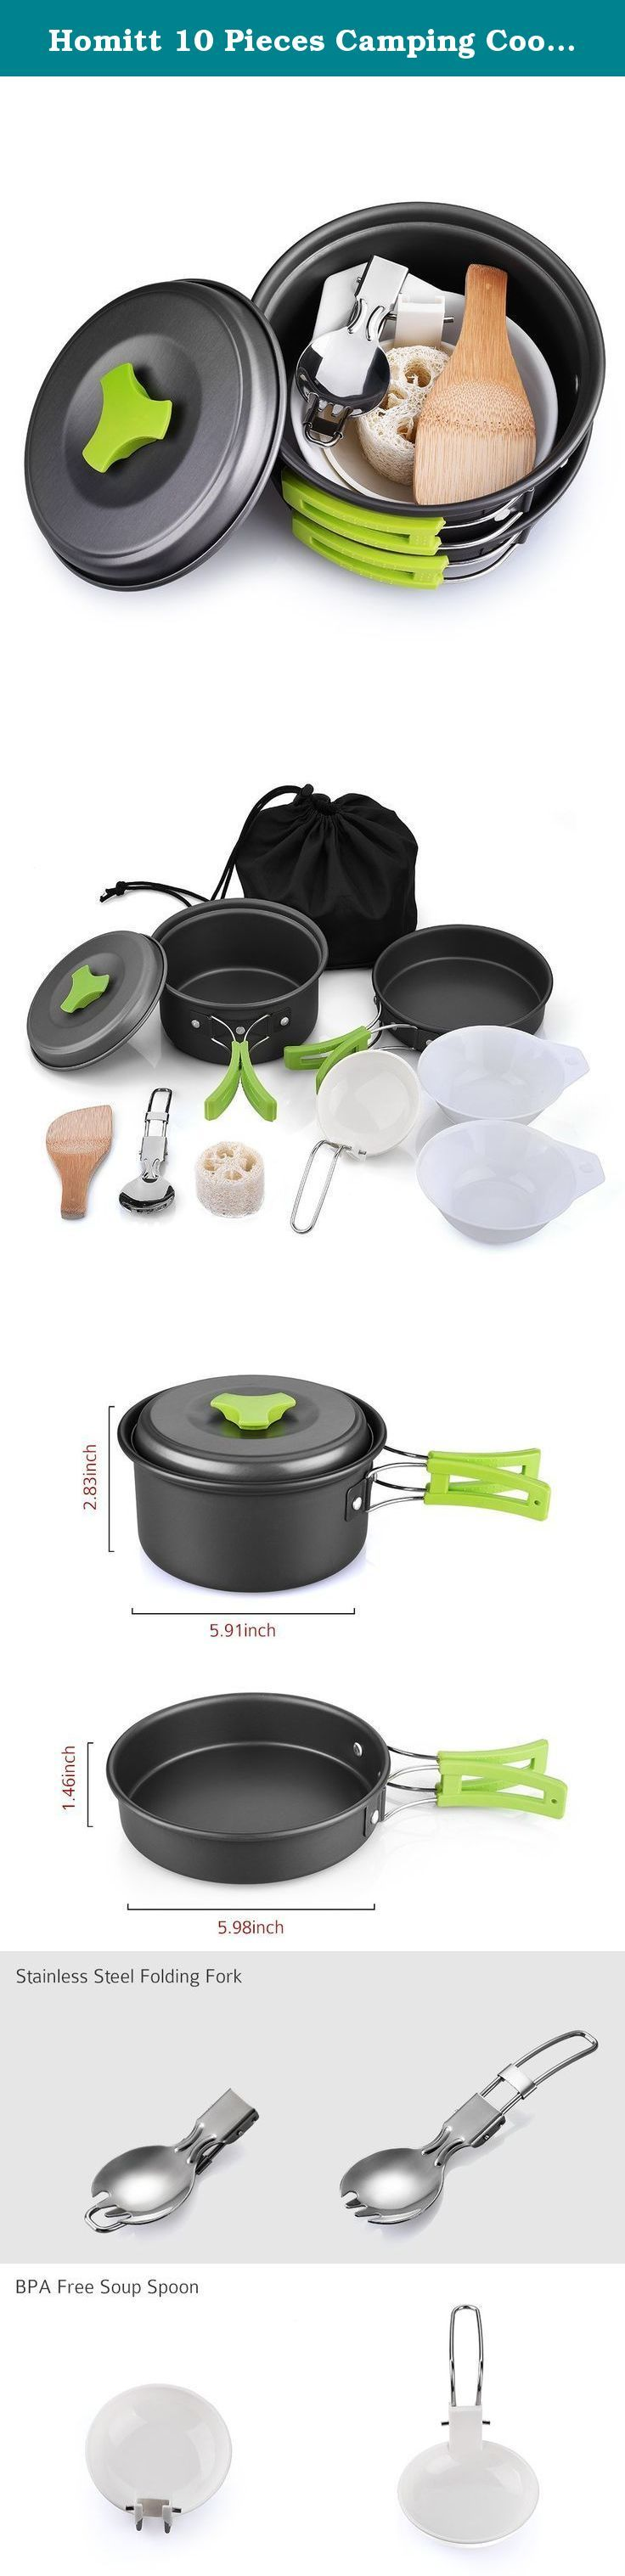 Homitt 10 Pieces Camping Cookware Mess Kit Portable Bowl Pot Pan Cookset for Outdoors, Backpacking, Hiking, Picnic. let's get into the wild! Getting bored at home? Wanna leave the busy crowd for couple of days? Or you are a lover of camping, backpacking, hiking, and picnic? Why not get into the wild? Start your adventure with purchasing our Homitt 10- Piece Camping Cookware Mess Kit! Made for Two This portable lightweight cooking set is suitable for using of 1-2 peoples. Specification...